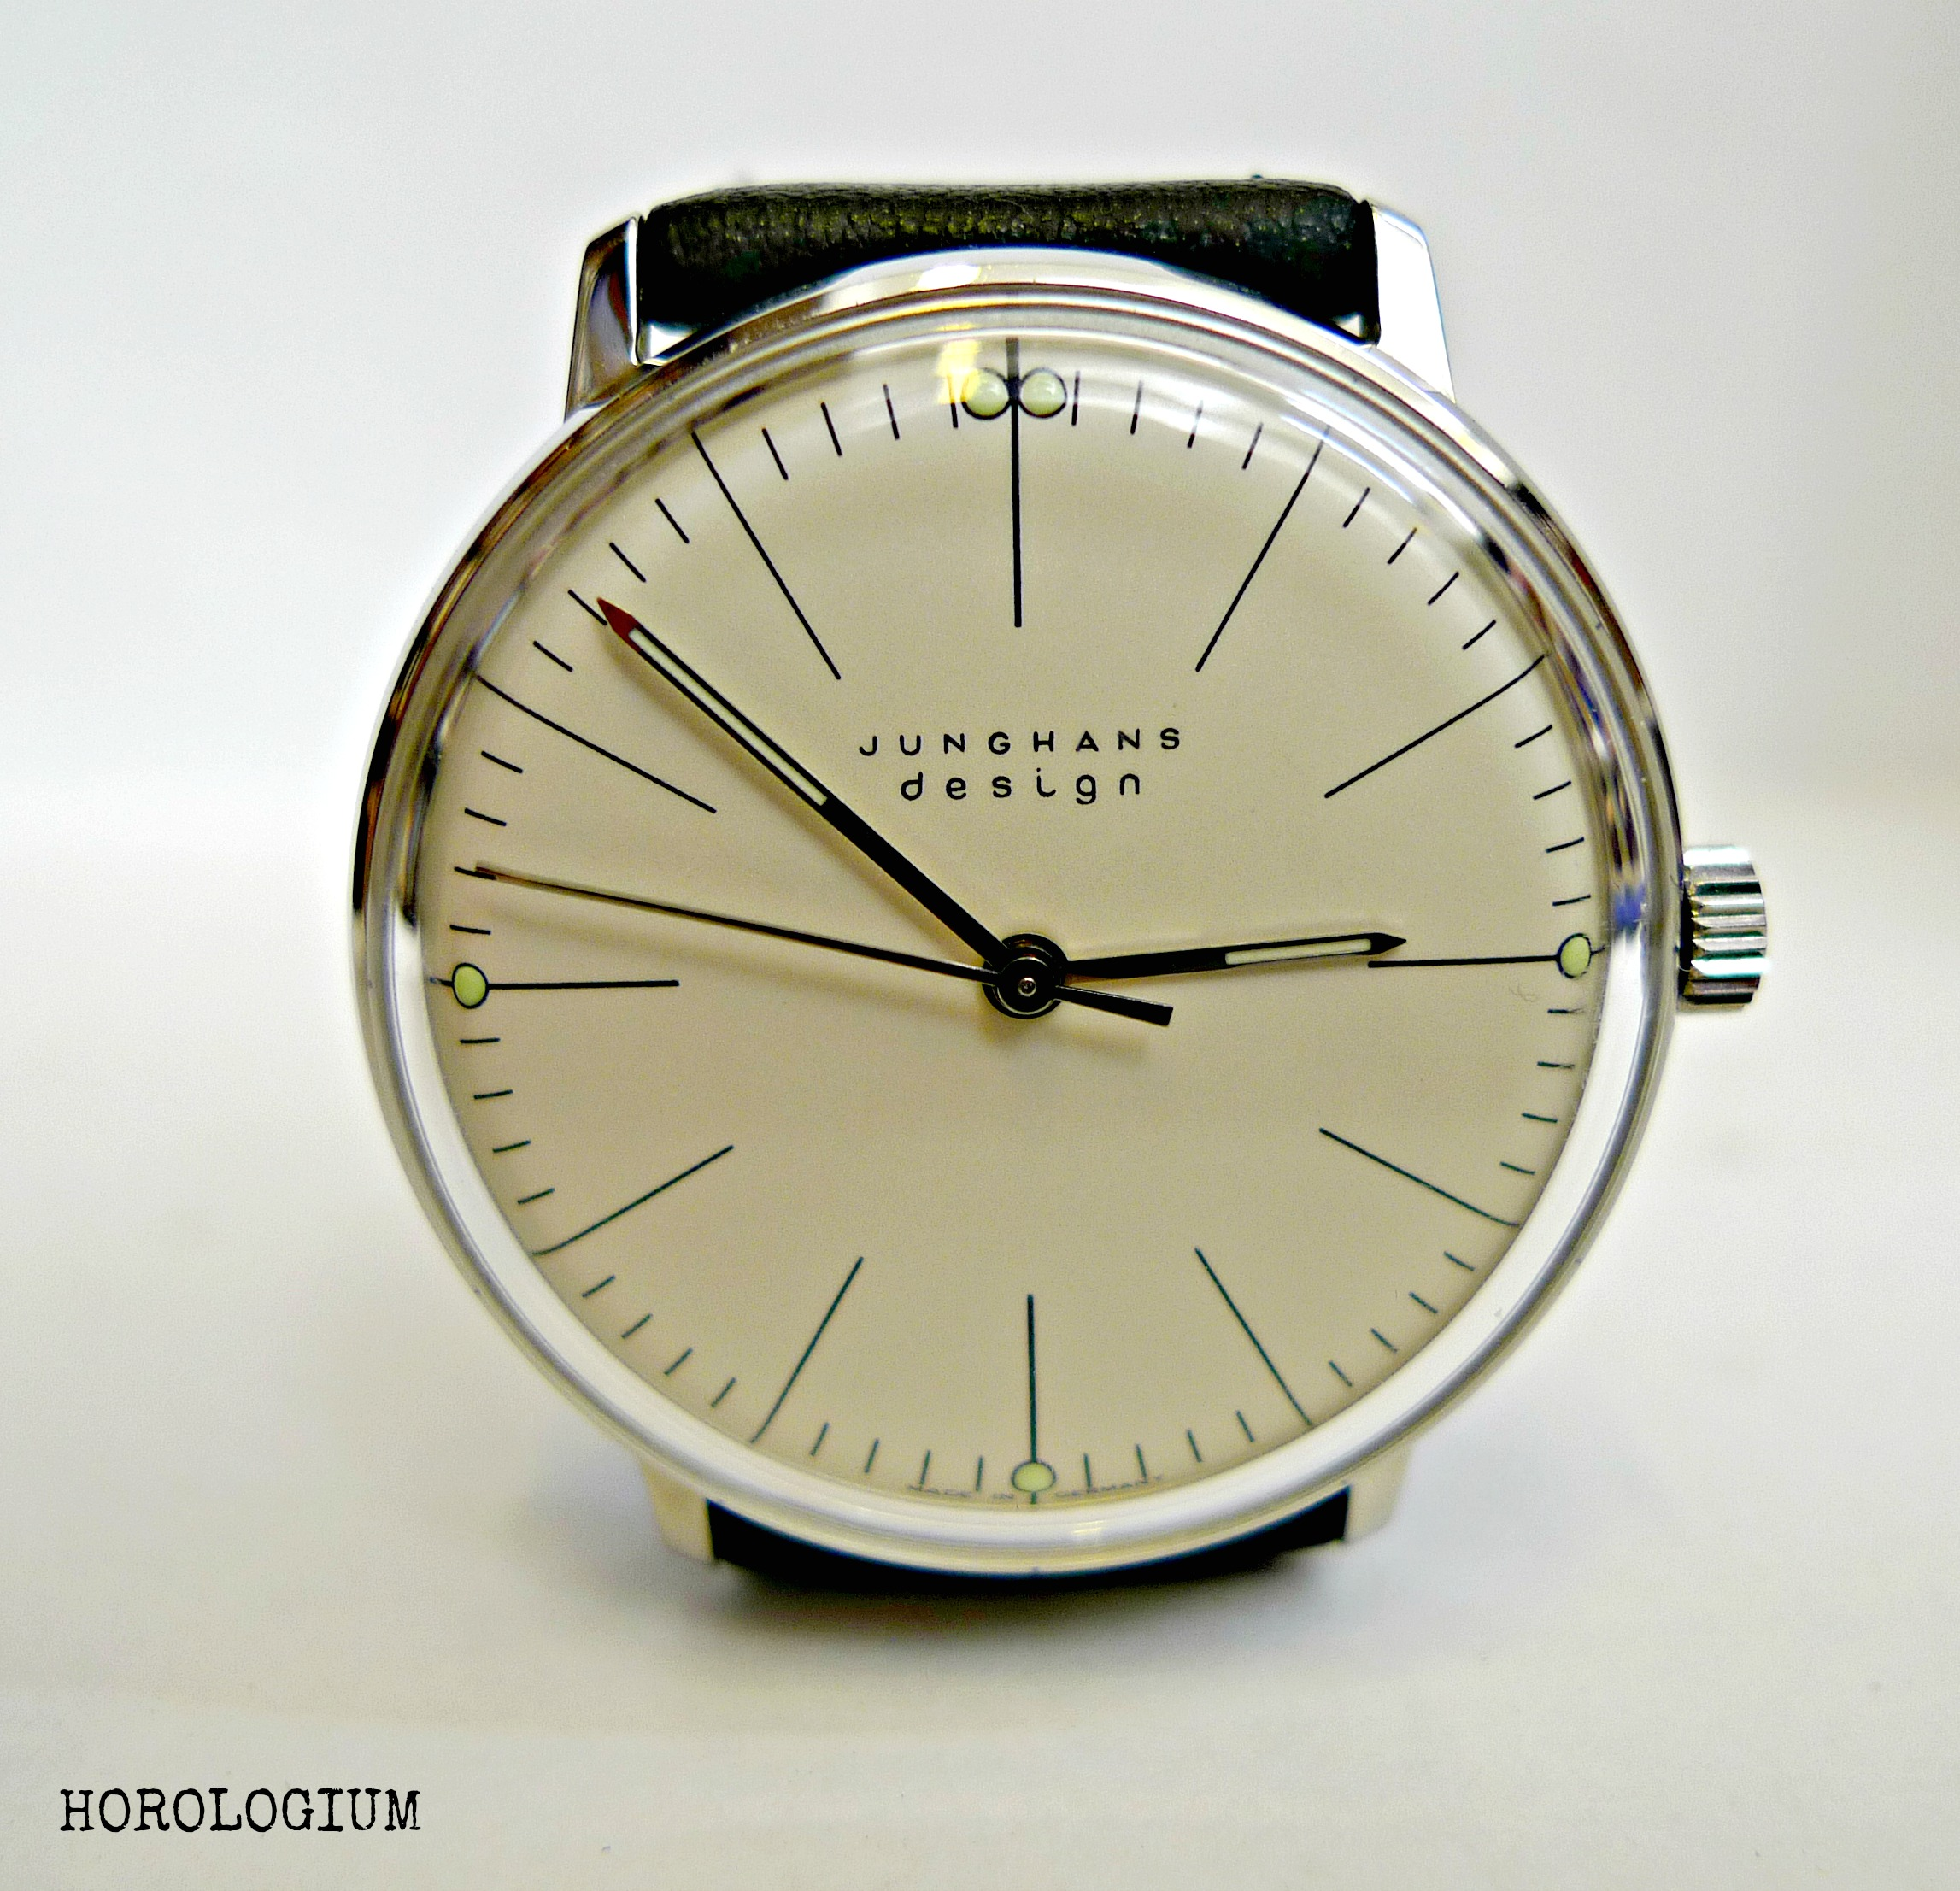 gilt watches dial bauhaus tellus img products